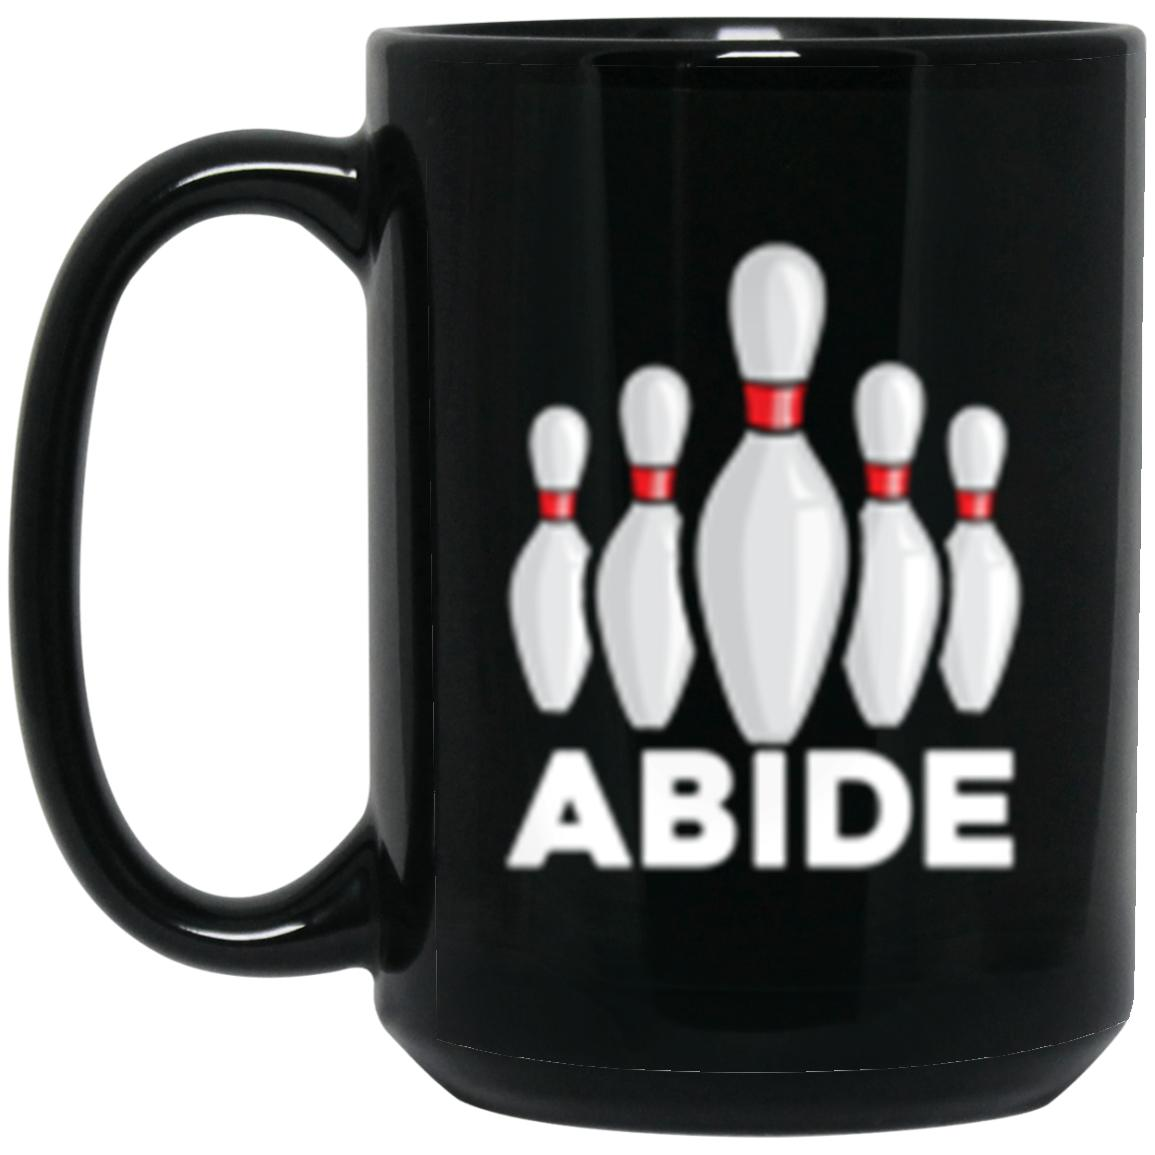 Drinkware - Abide Pins Black Mug 15oz (2-sided)